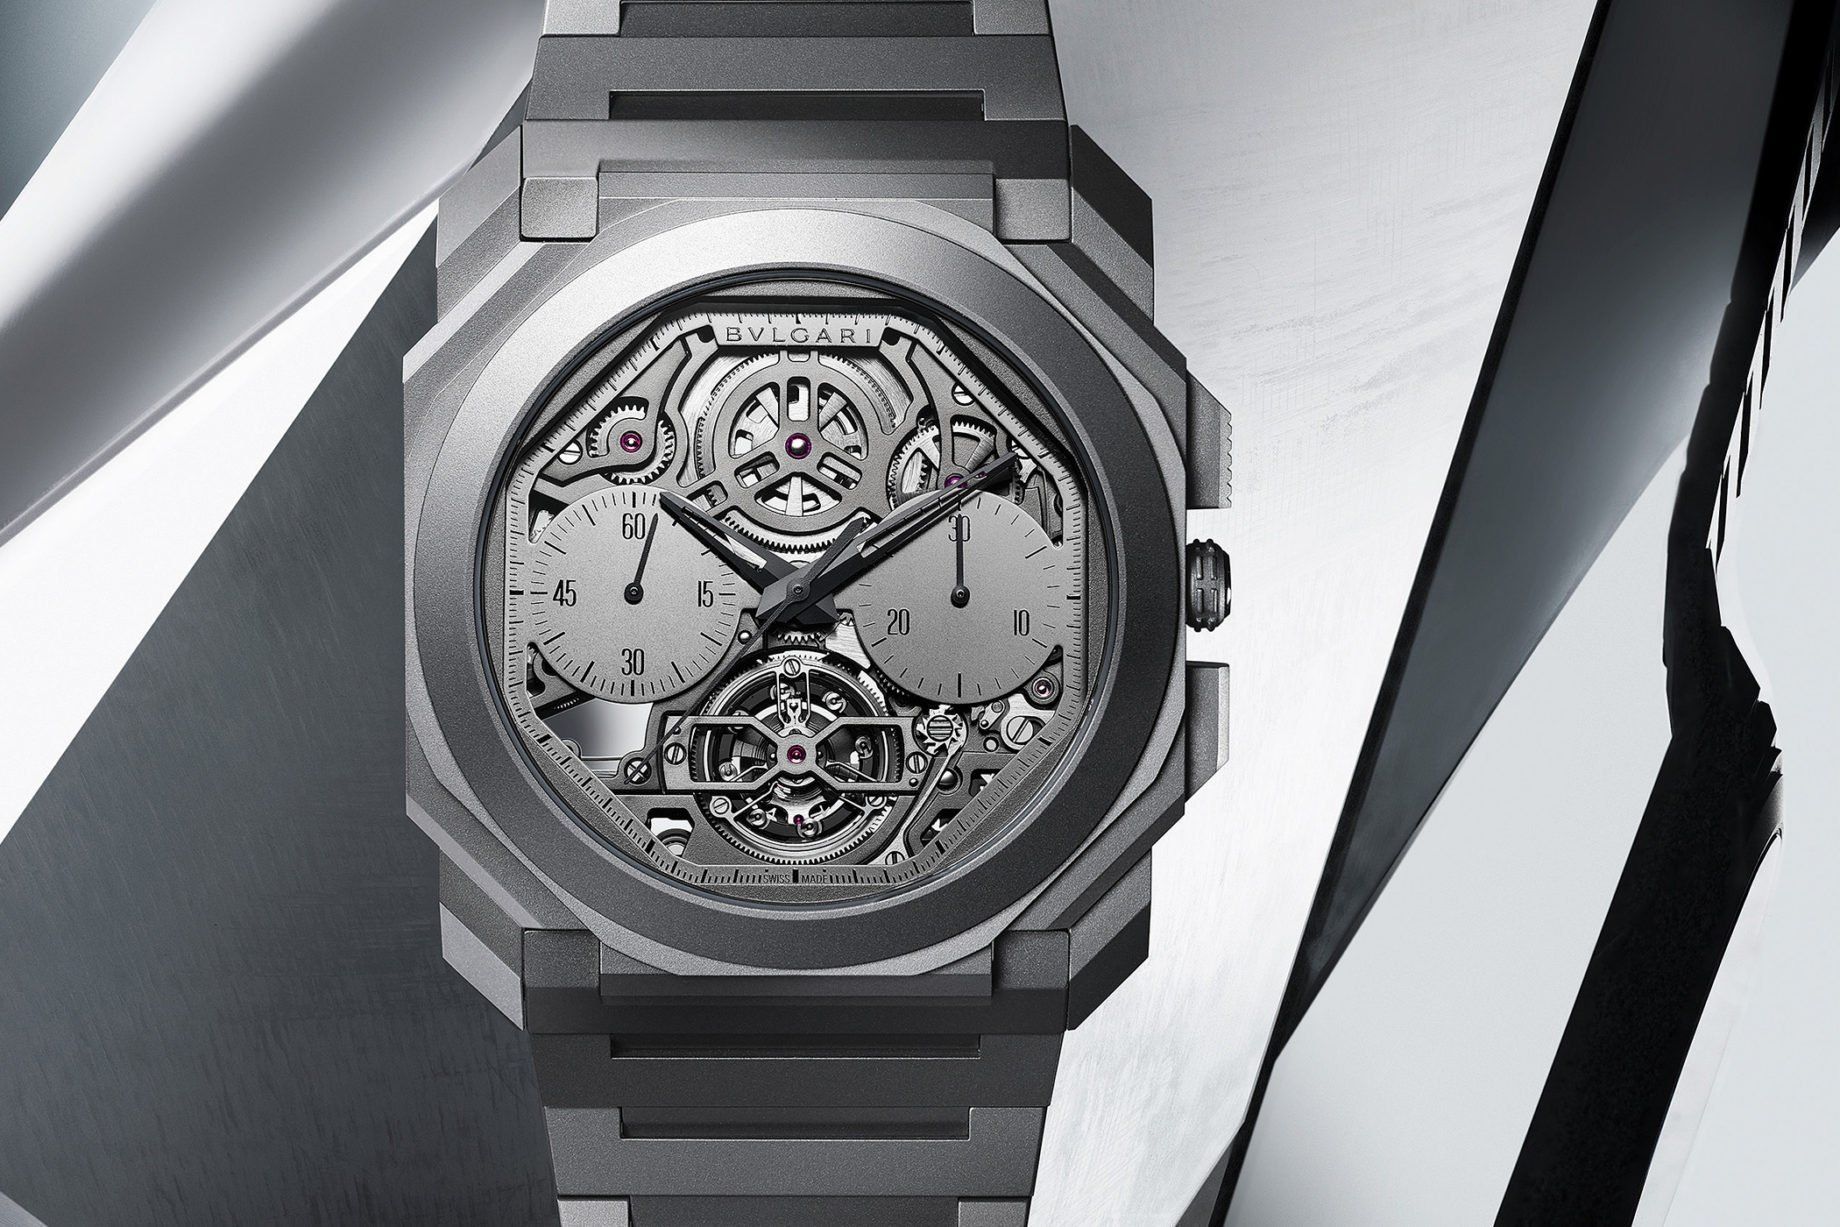 Bulgari - Octo Finissimo Tourbillon Chronograph Skeleton